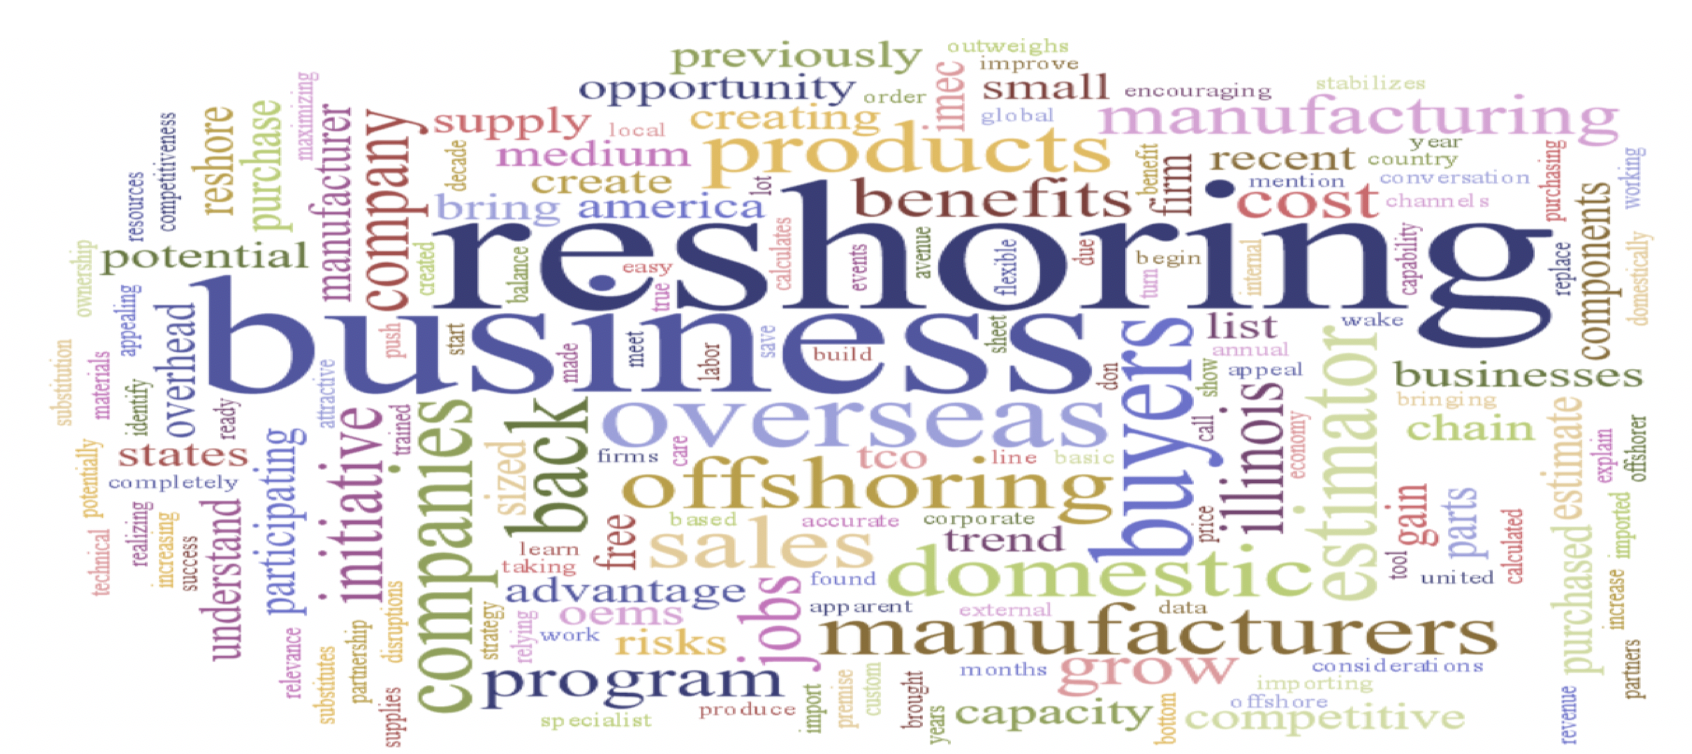 Reshoring: What Manufacturers Should Know